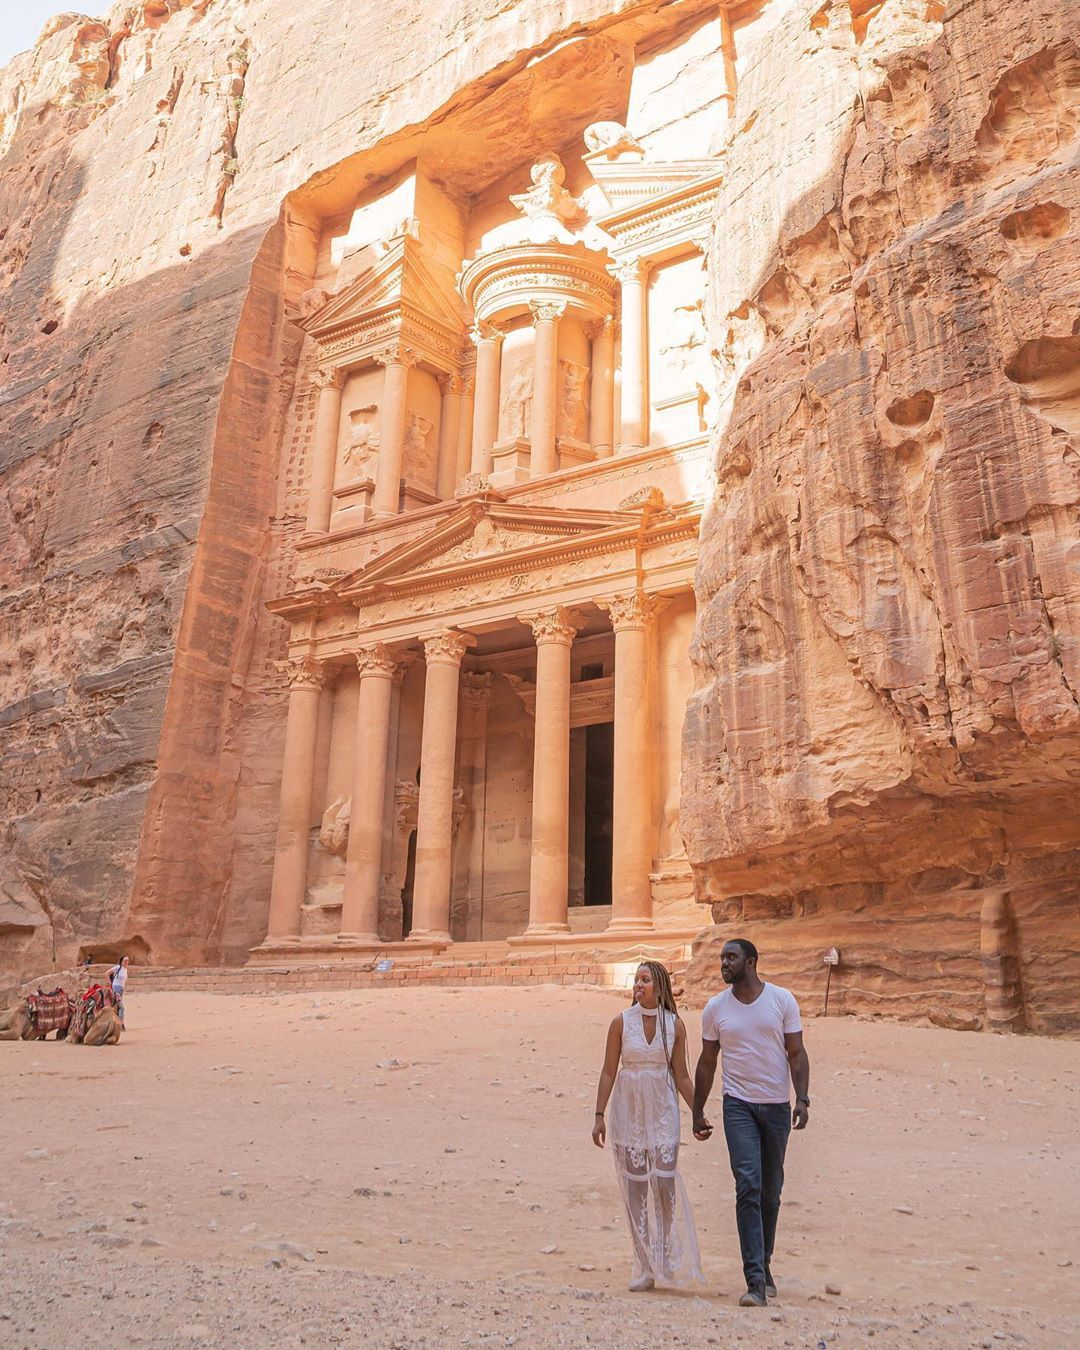 Lj Mj Travel Couple On Instagram Petra One Of The New Seven Wonders Of The World Petra Was Europe Travel Accessories Travel Couple Travel Aesthetic